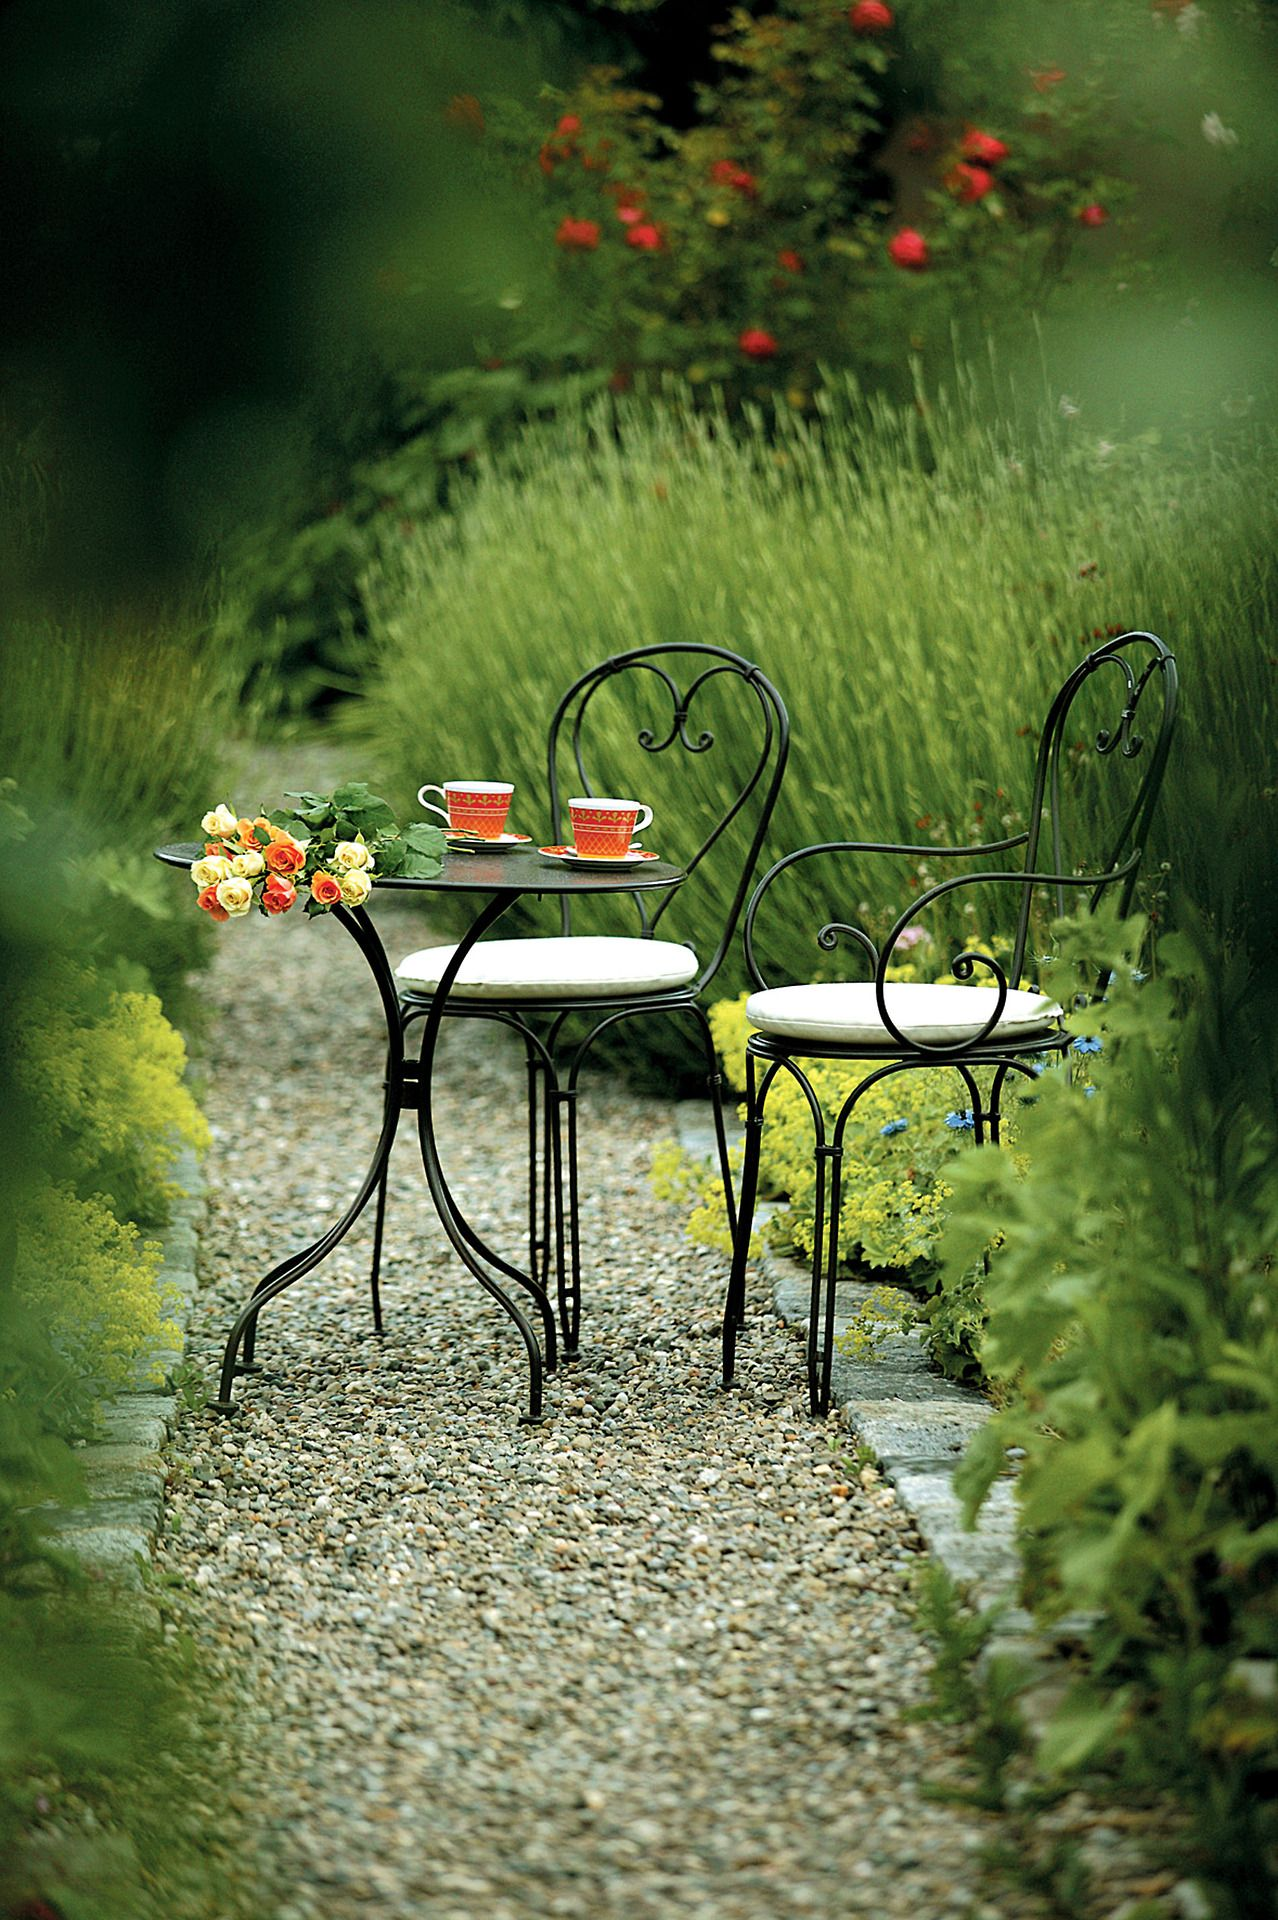 I Like It Having A Nice Tea With Mother Nature Always In The Country Http Samidssomarspace Wordpress Com Repas Jardin Jardins Amenagement Jardin